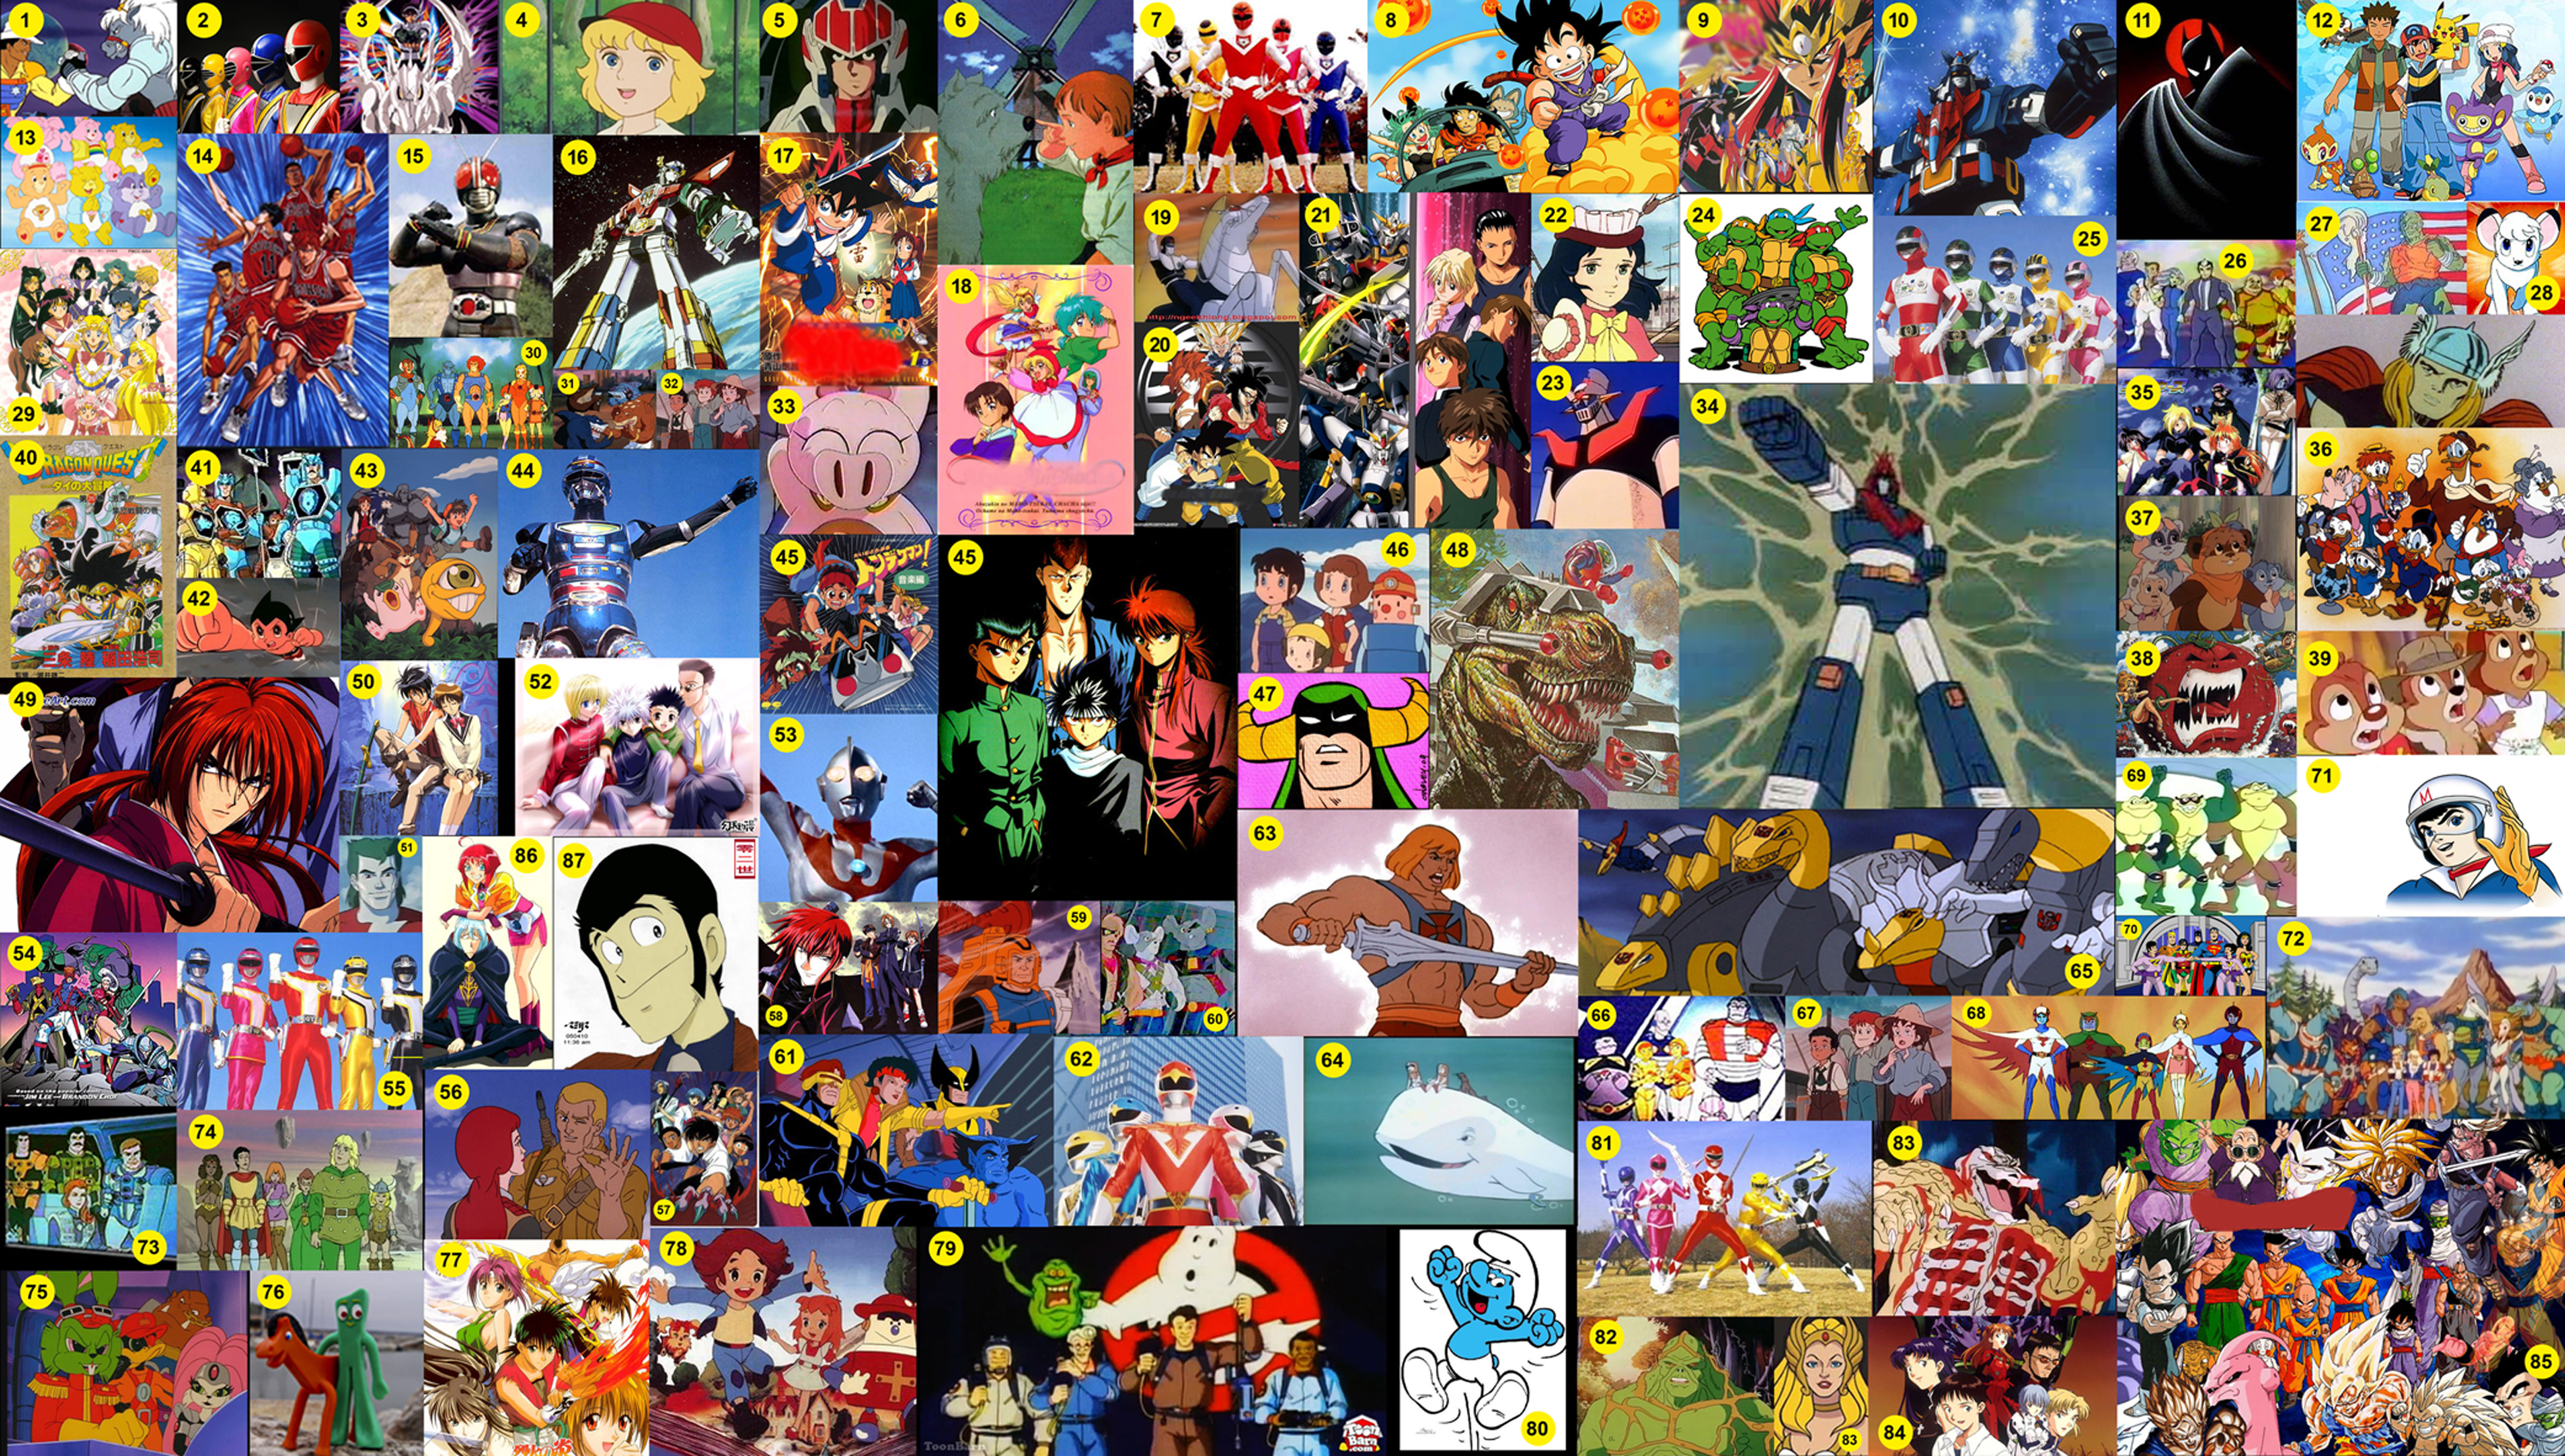 My Collection Of 80 39 S 90 39 S Anime 39 S Cartoons Etc By Portpolyonam